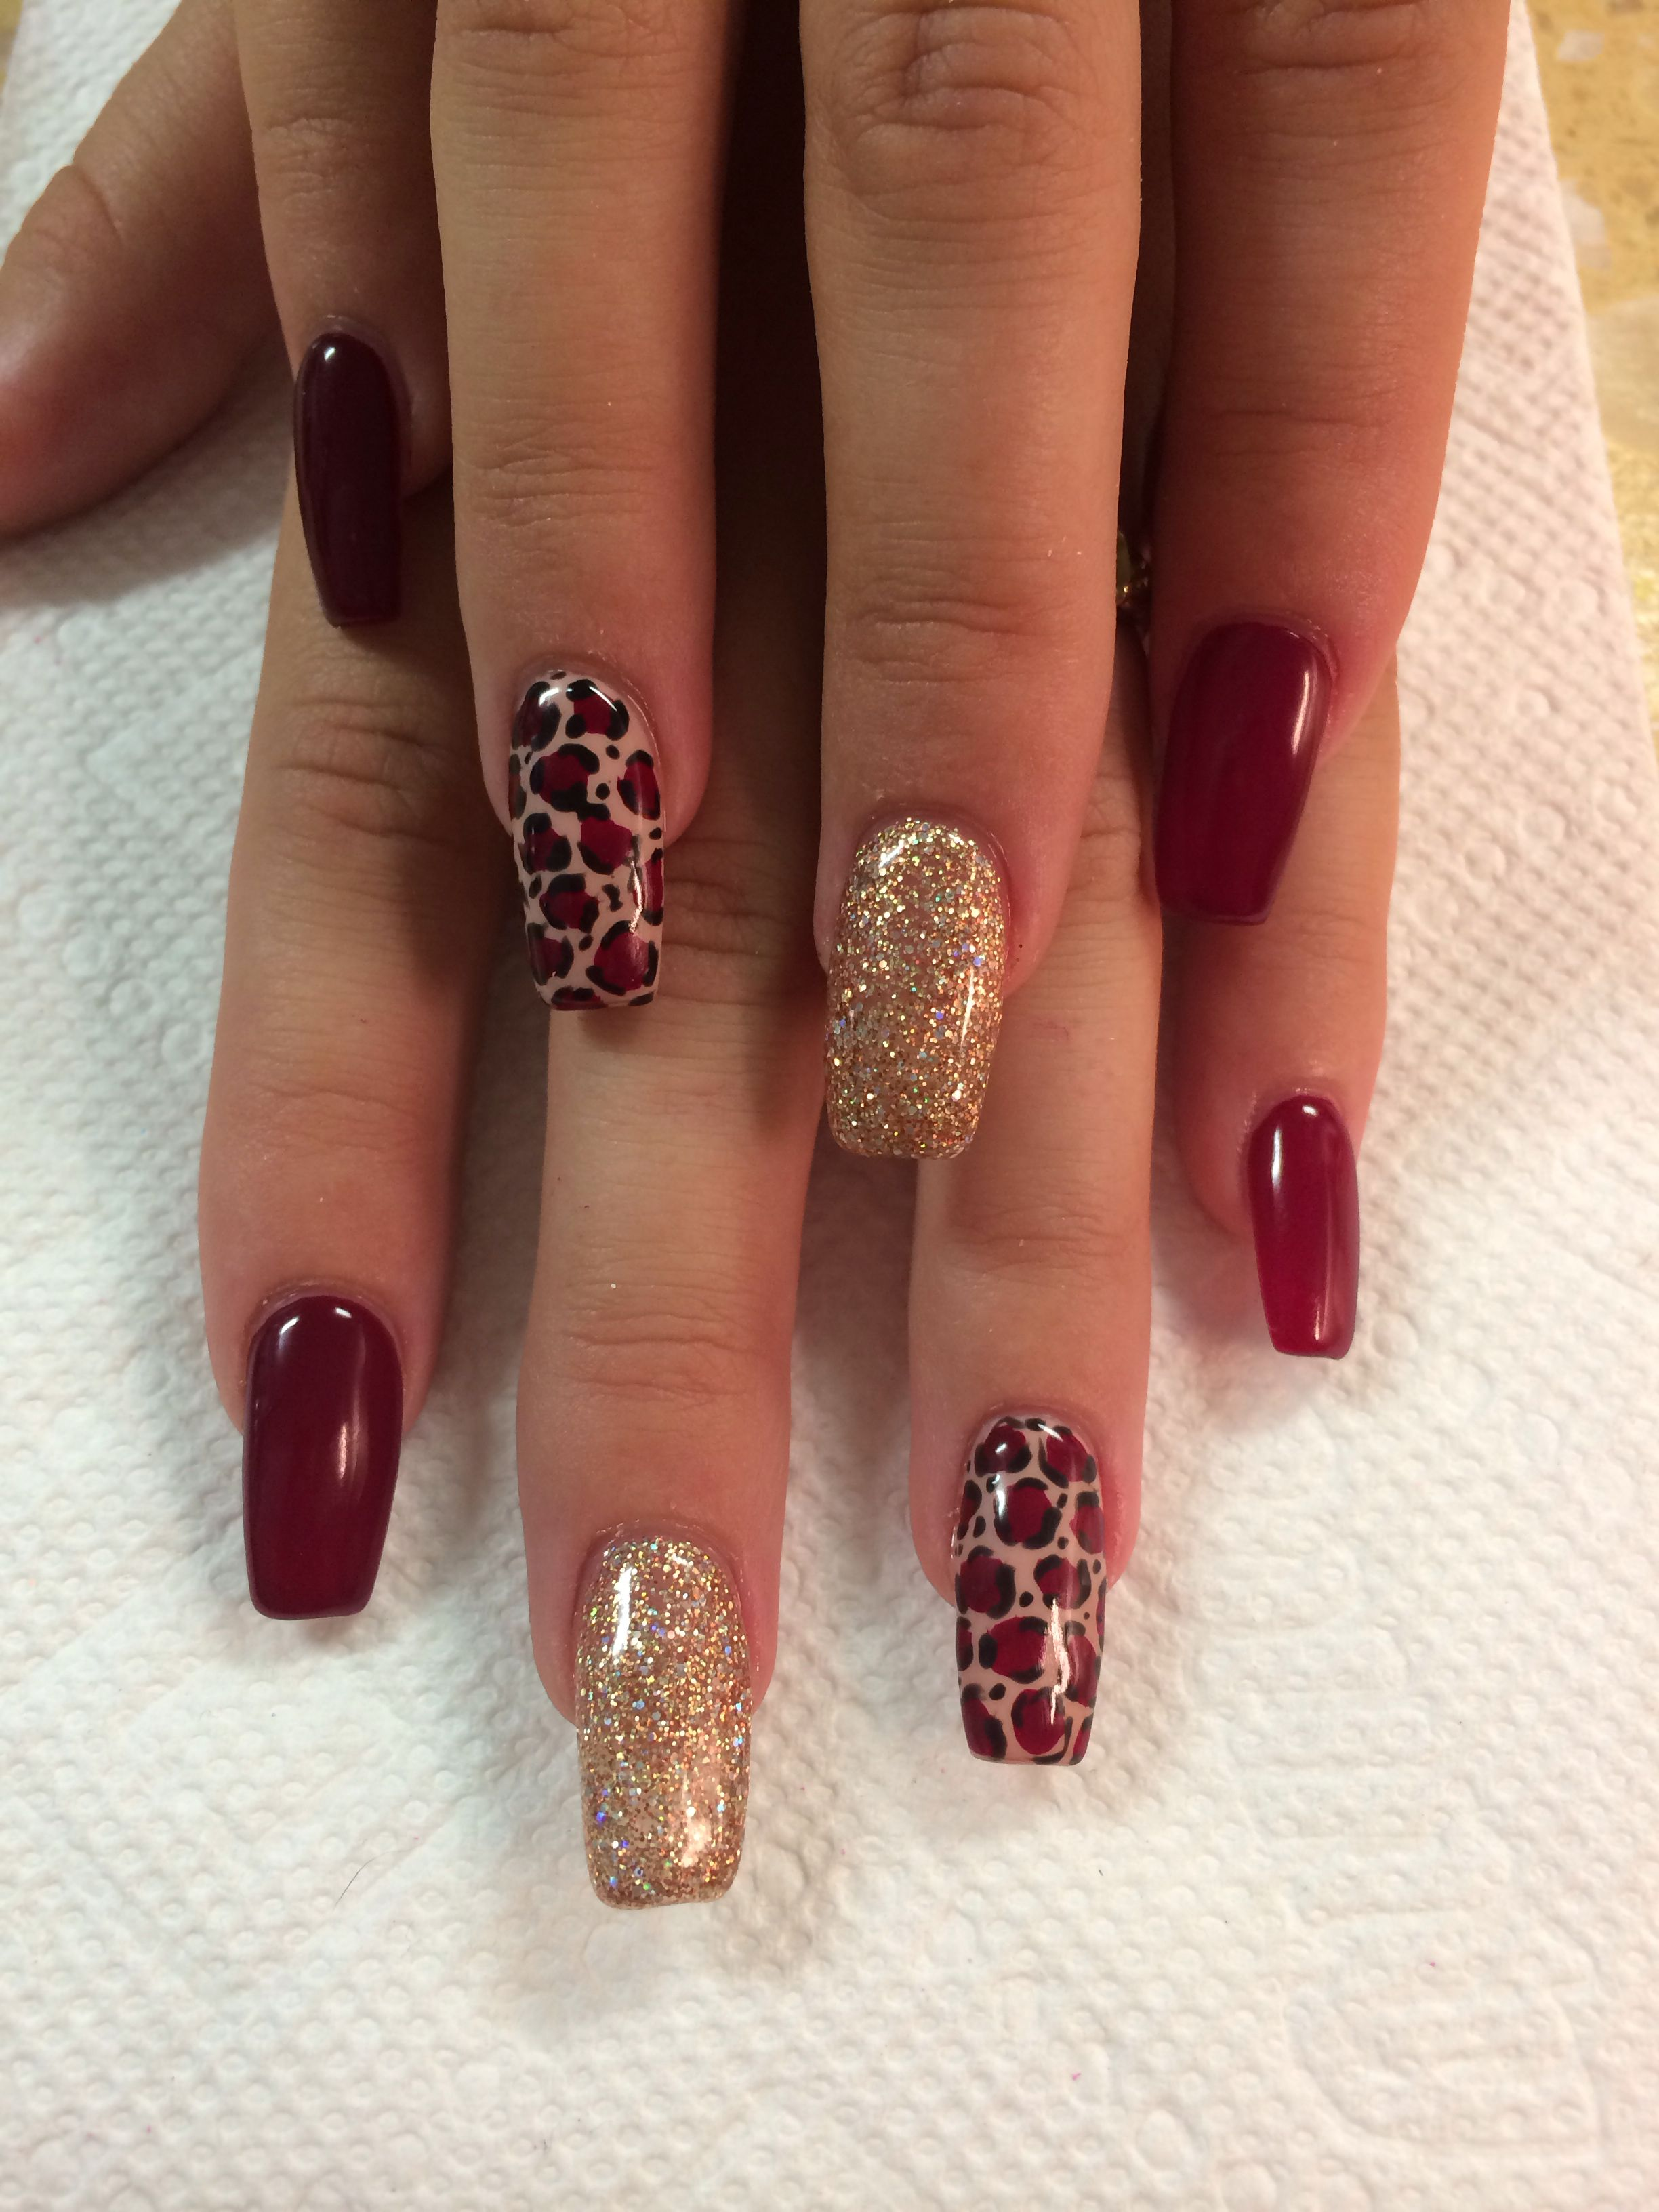 Cheetah print nail design | Nails | Pinterest | Cheetah print ...